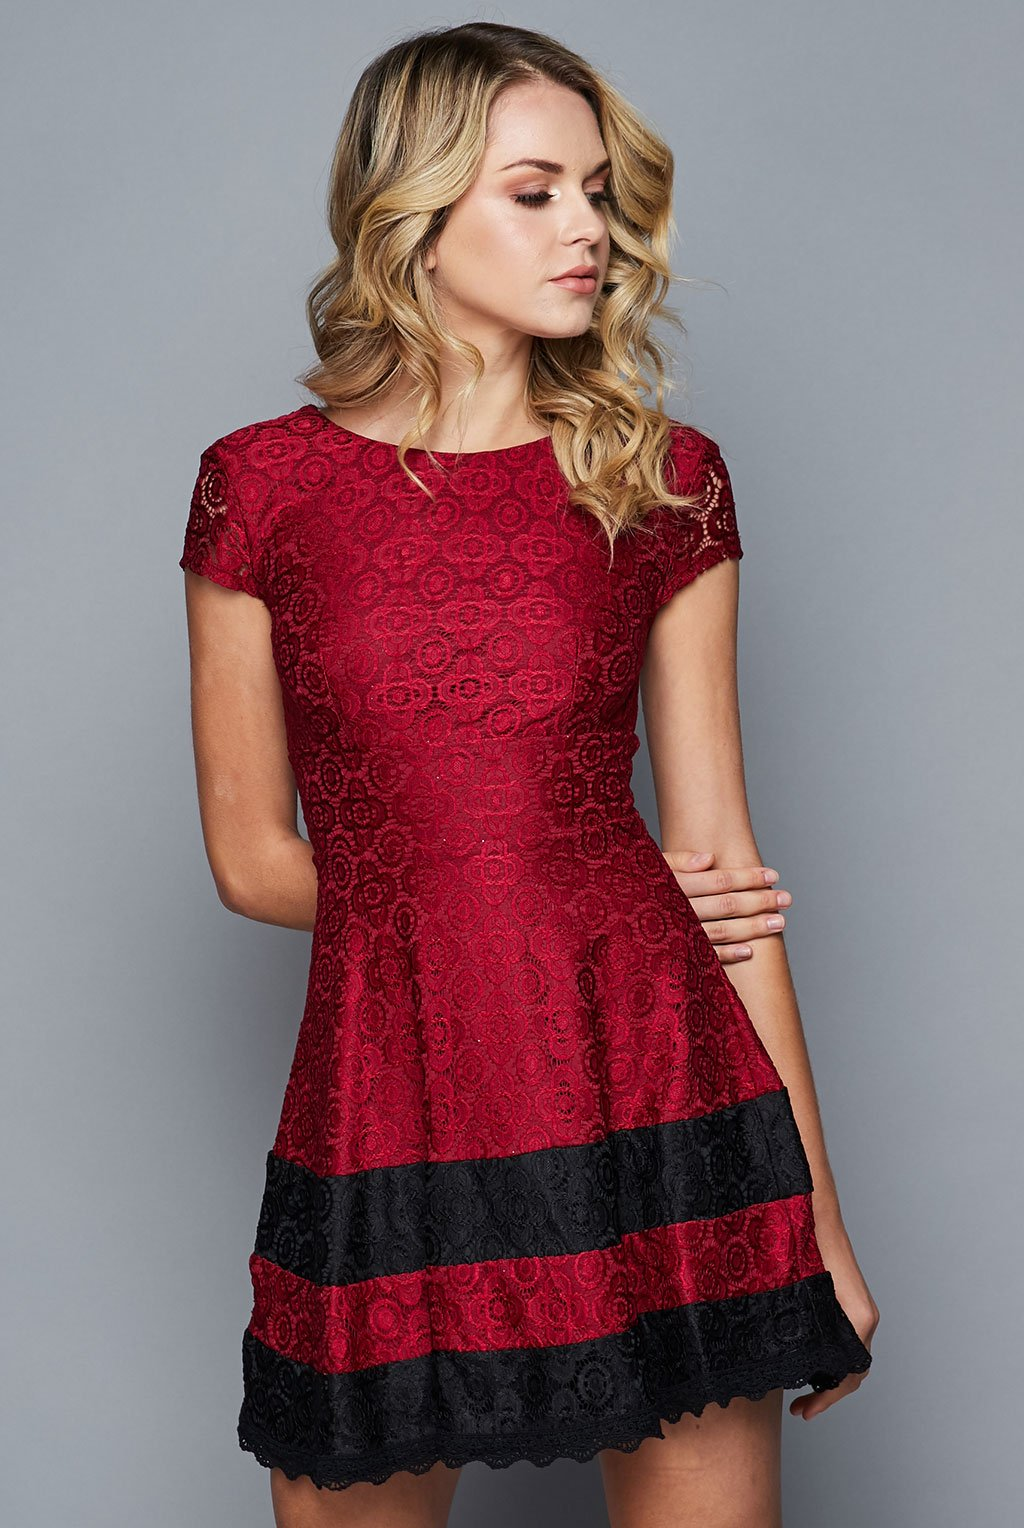 Teeze Me | Fit And Flare Lace Scallop Hem Dress  | Burgundy/Black